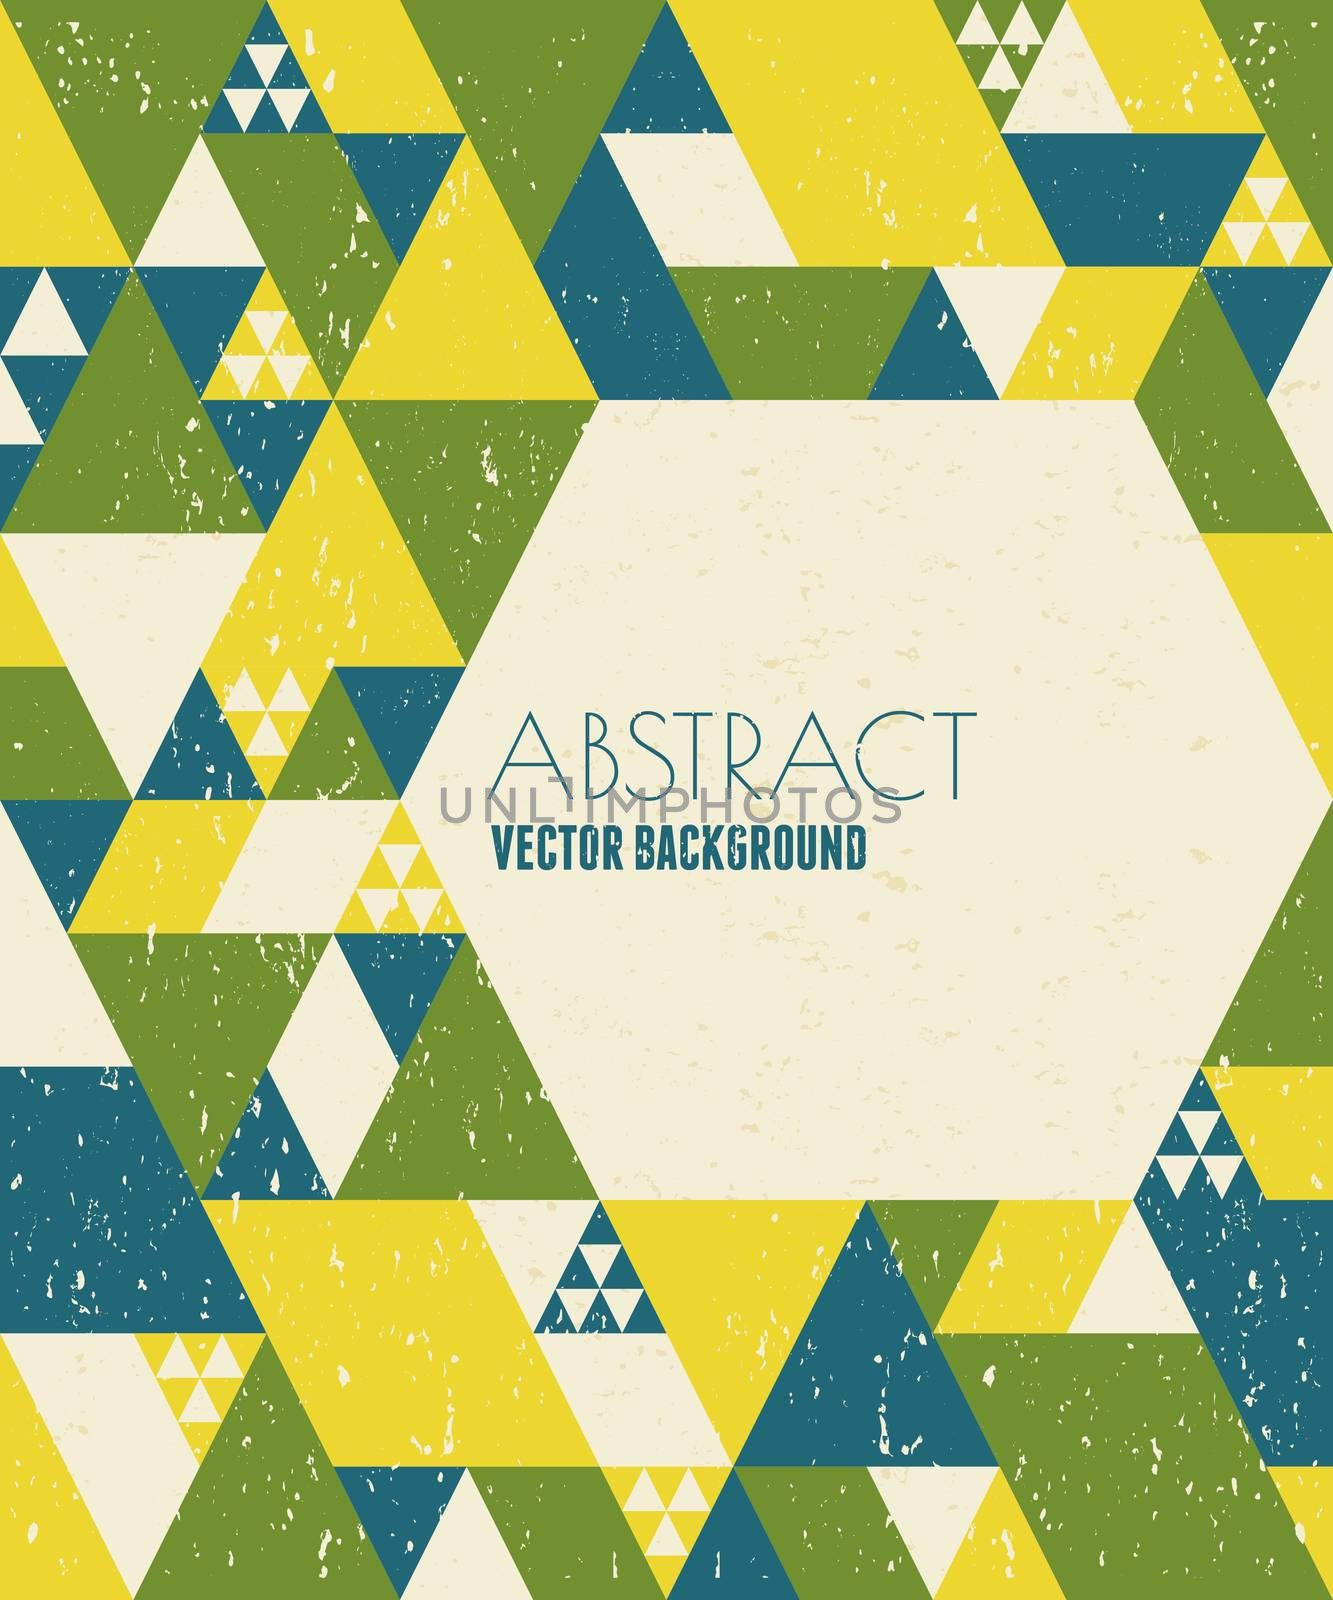 Abstract geometric design in blue, yellow and green with copy space.